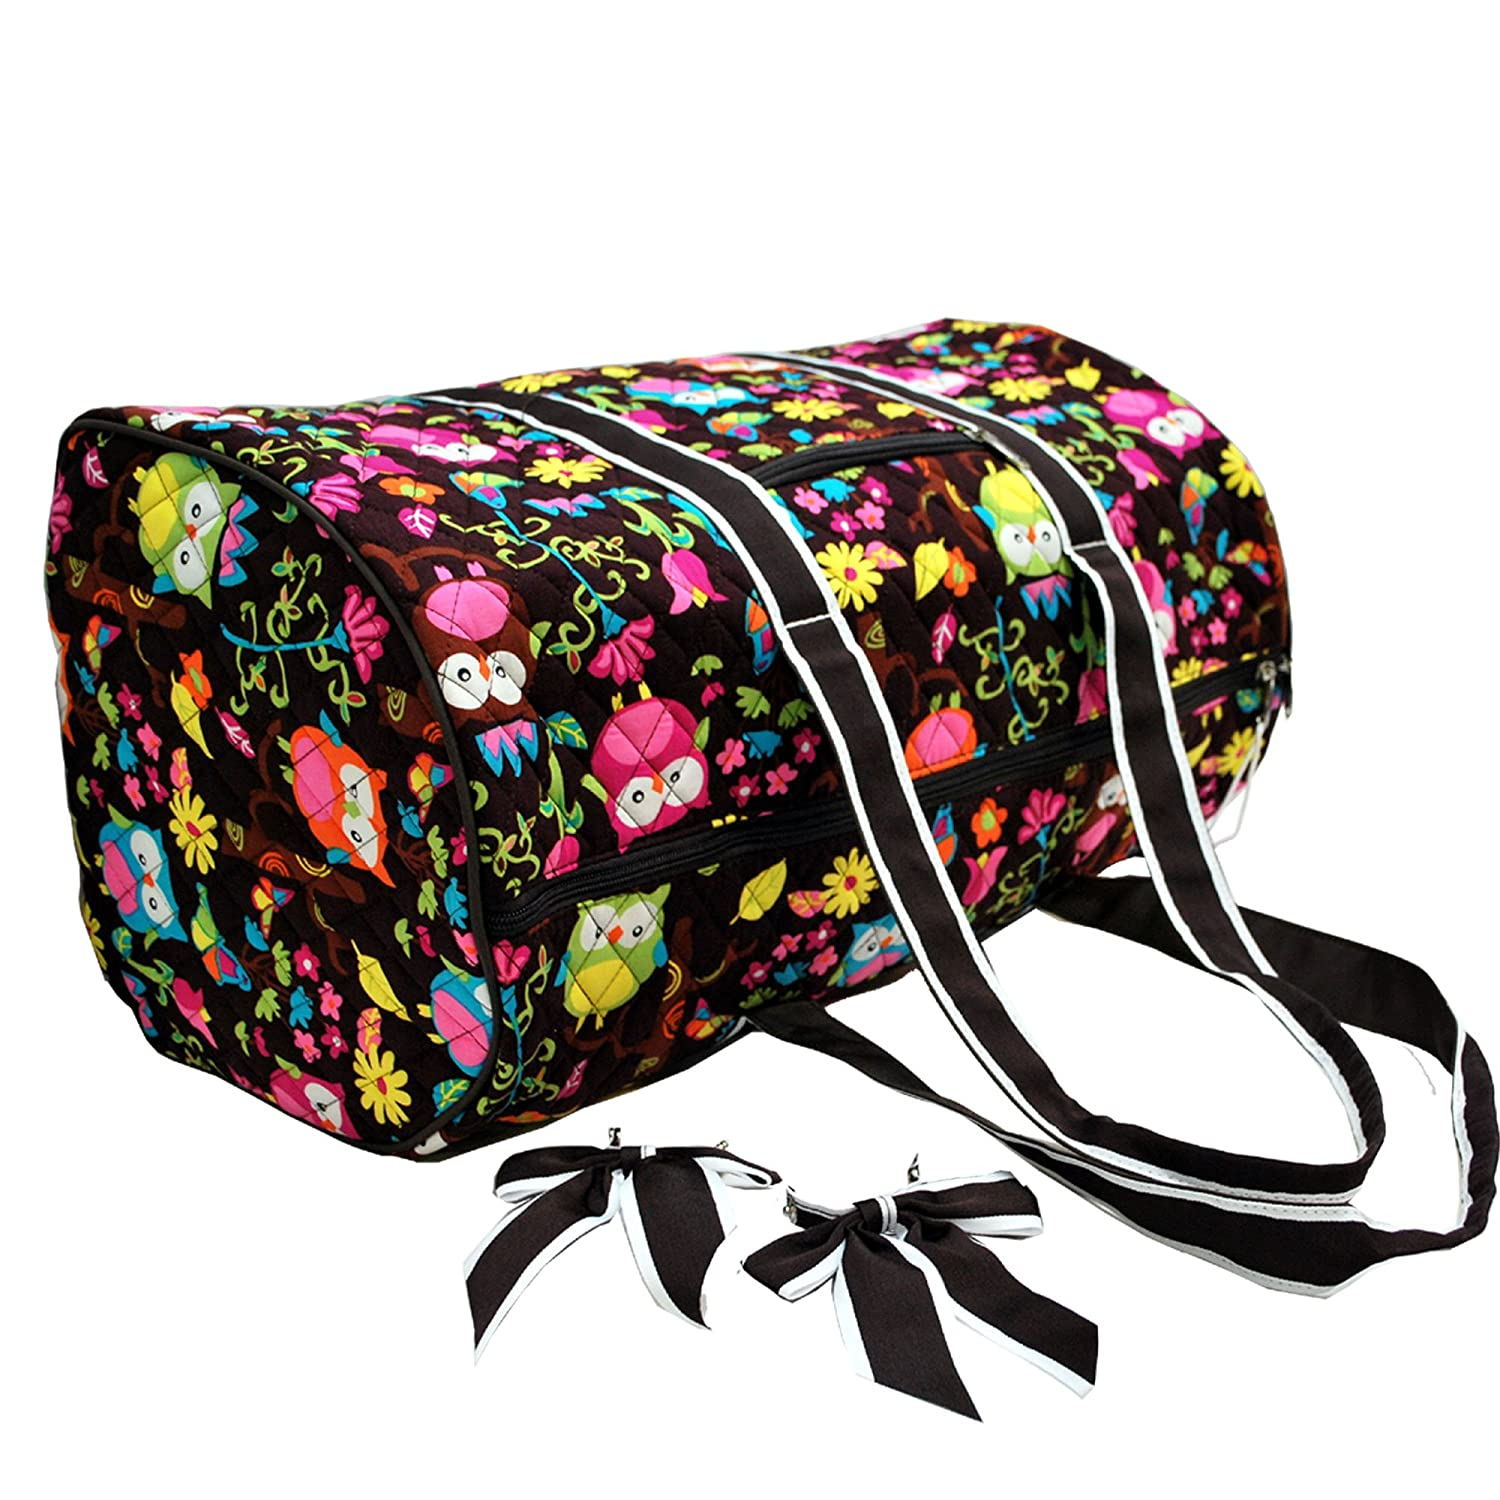 Fashionable Super LightweightOri-Ori Quilted Floral Carry-On Duffel Bag in 3 Patterns-BEST GIFT owl